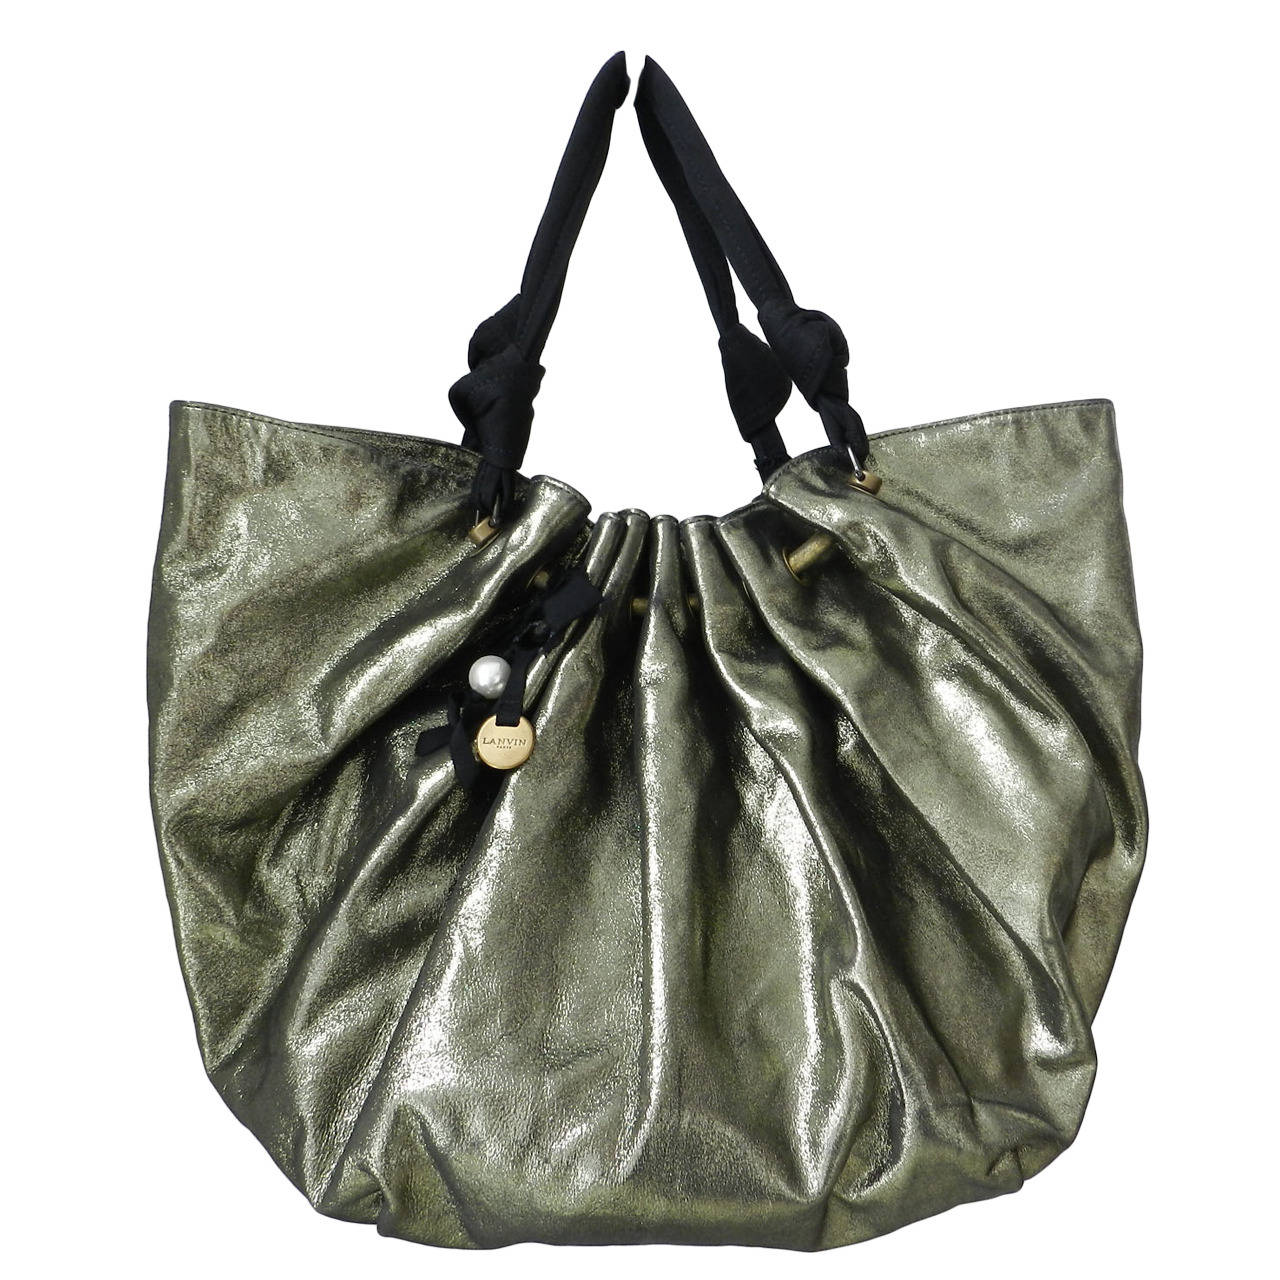 Lanvin Large Polisson Metallic Tote Bag at 1stdibs